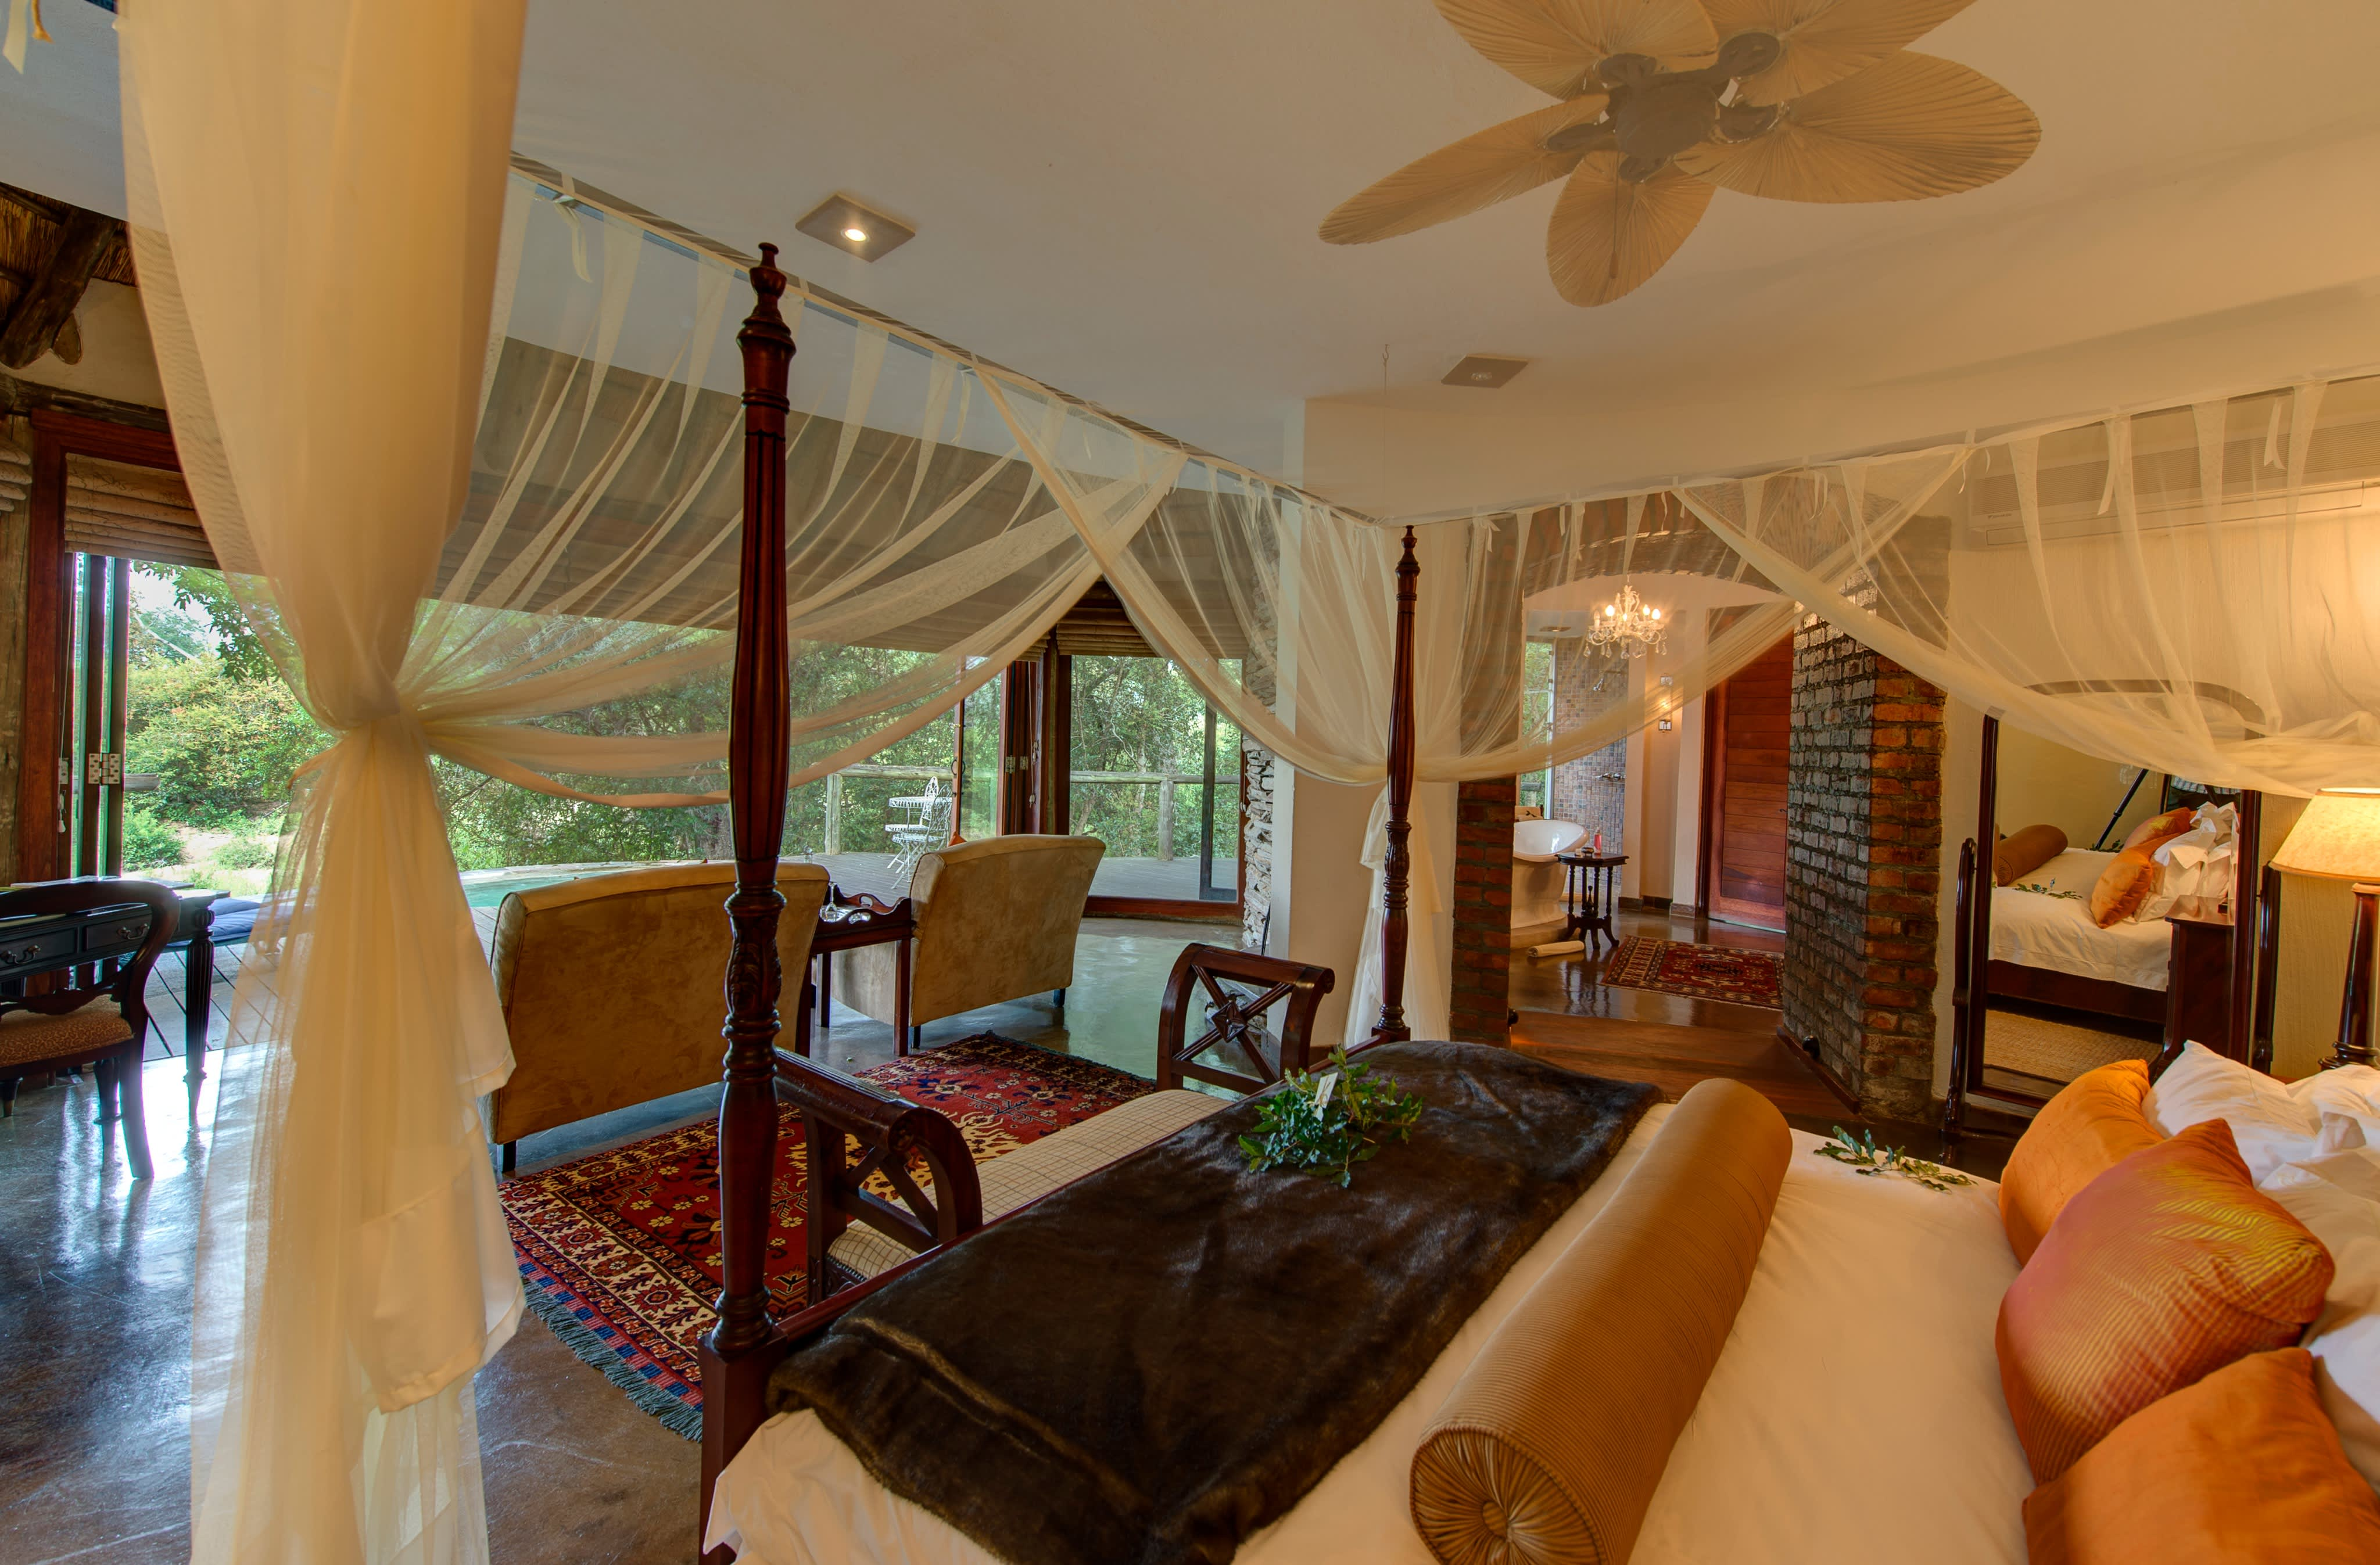 FLY AWAY TO THE BUSH OCTOBER 21- Tintswalo Safari Lodge- 3 Night 5* LUXURY Stay for 2 + All Meals, FLIGHTS & More!